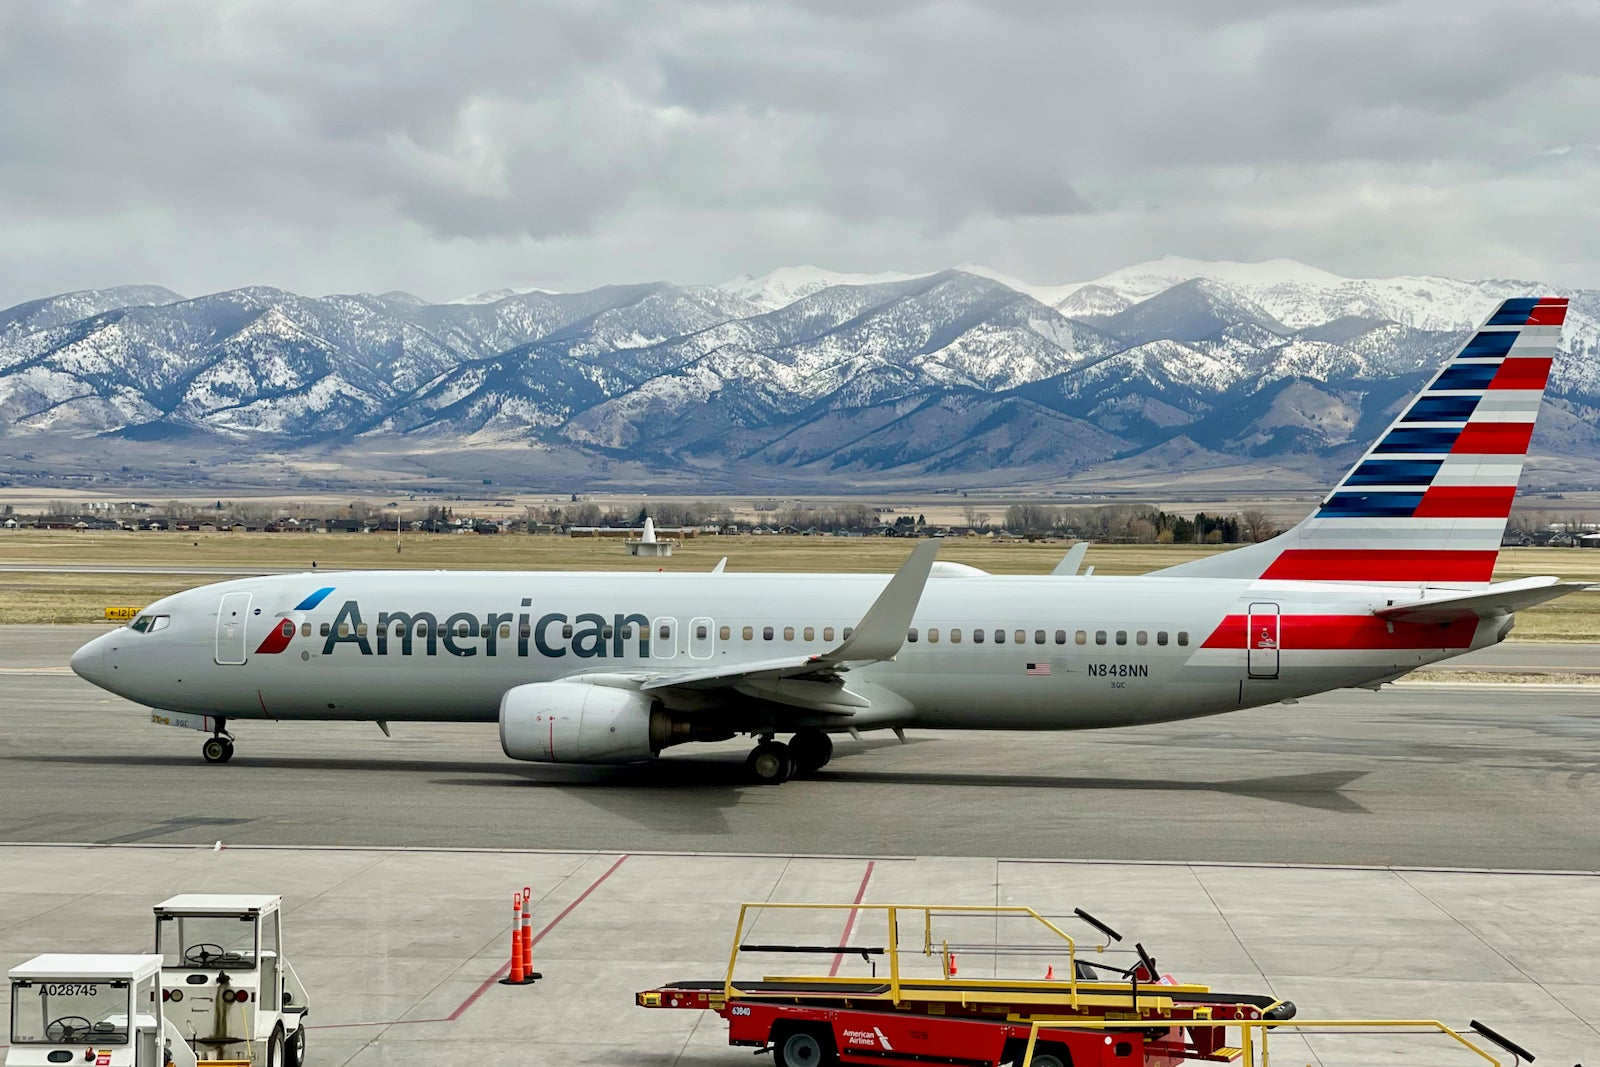 Deal alert: AA fares as low as $40 one-way - The Points Guy